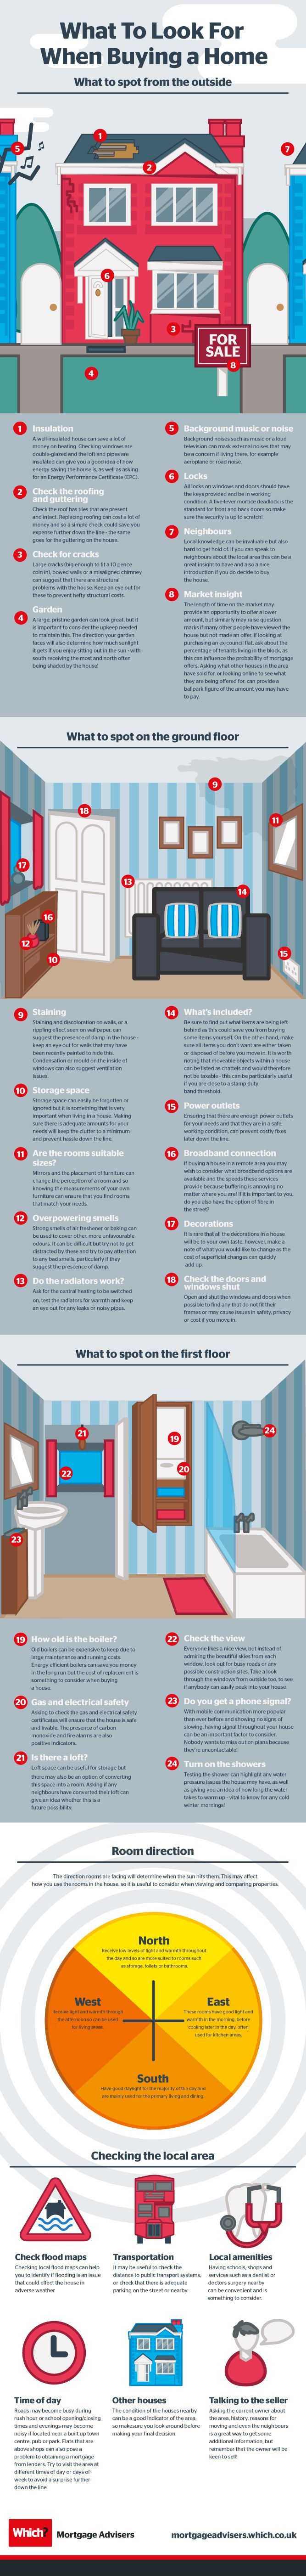 What to look for when buying a home - Which?